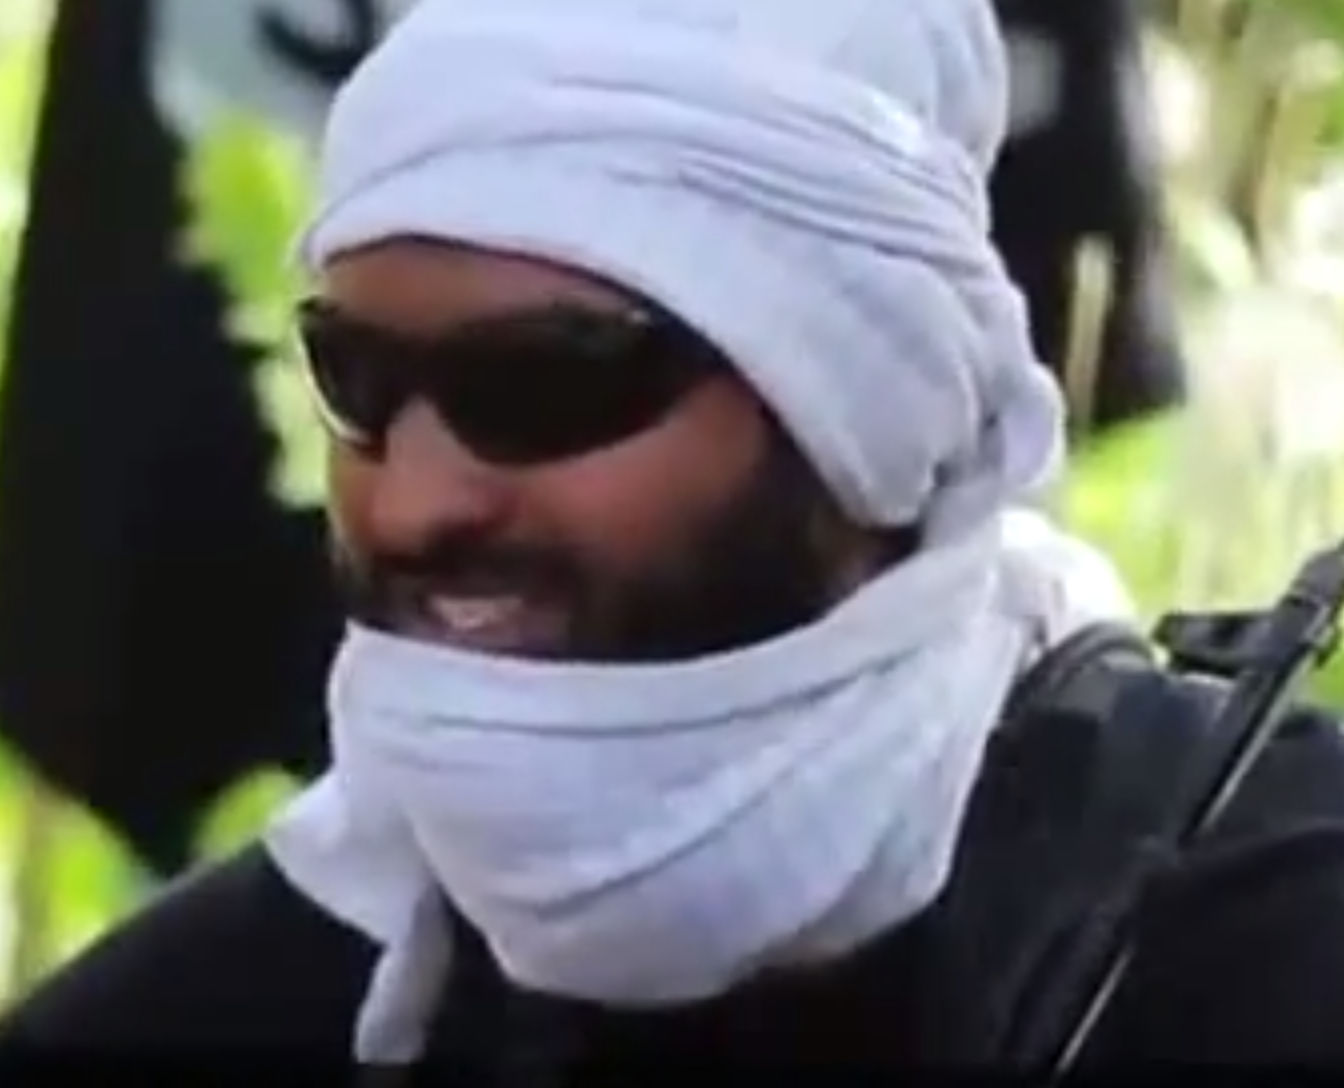 Abdul Raqib Amin  from Aberdeen fled to Syria to fight for IS